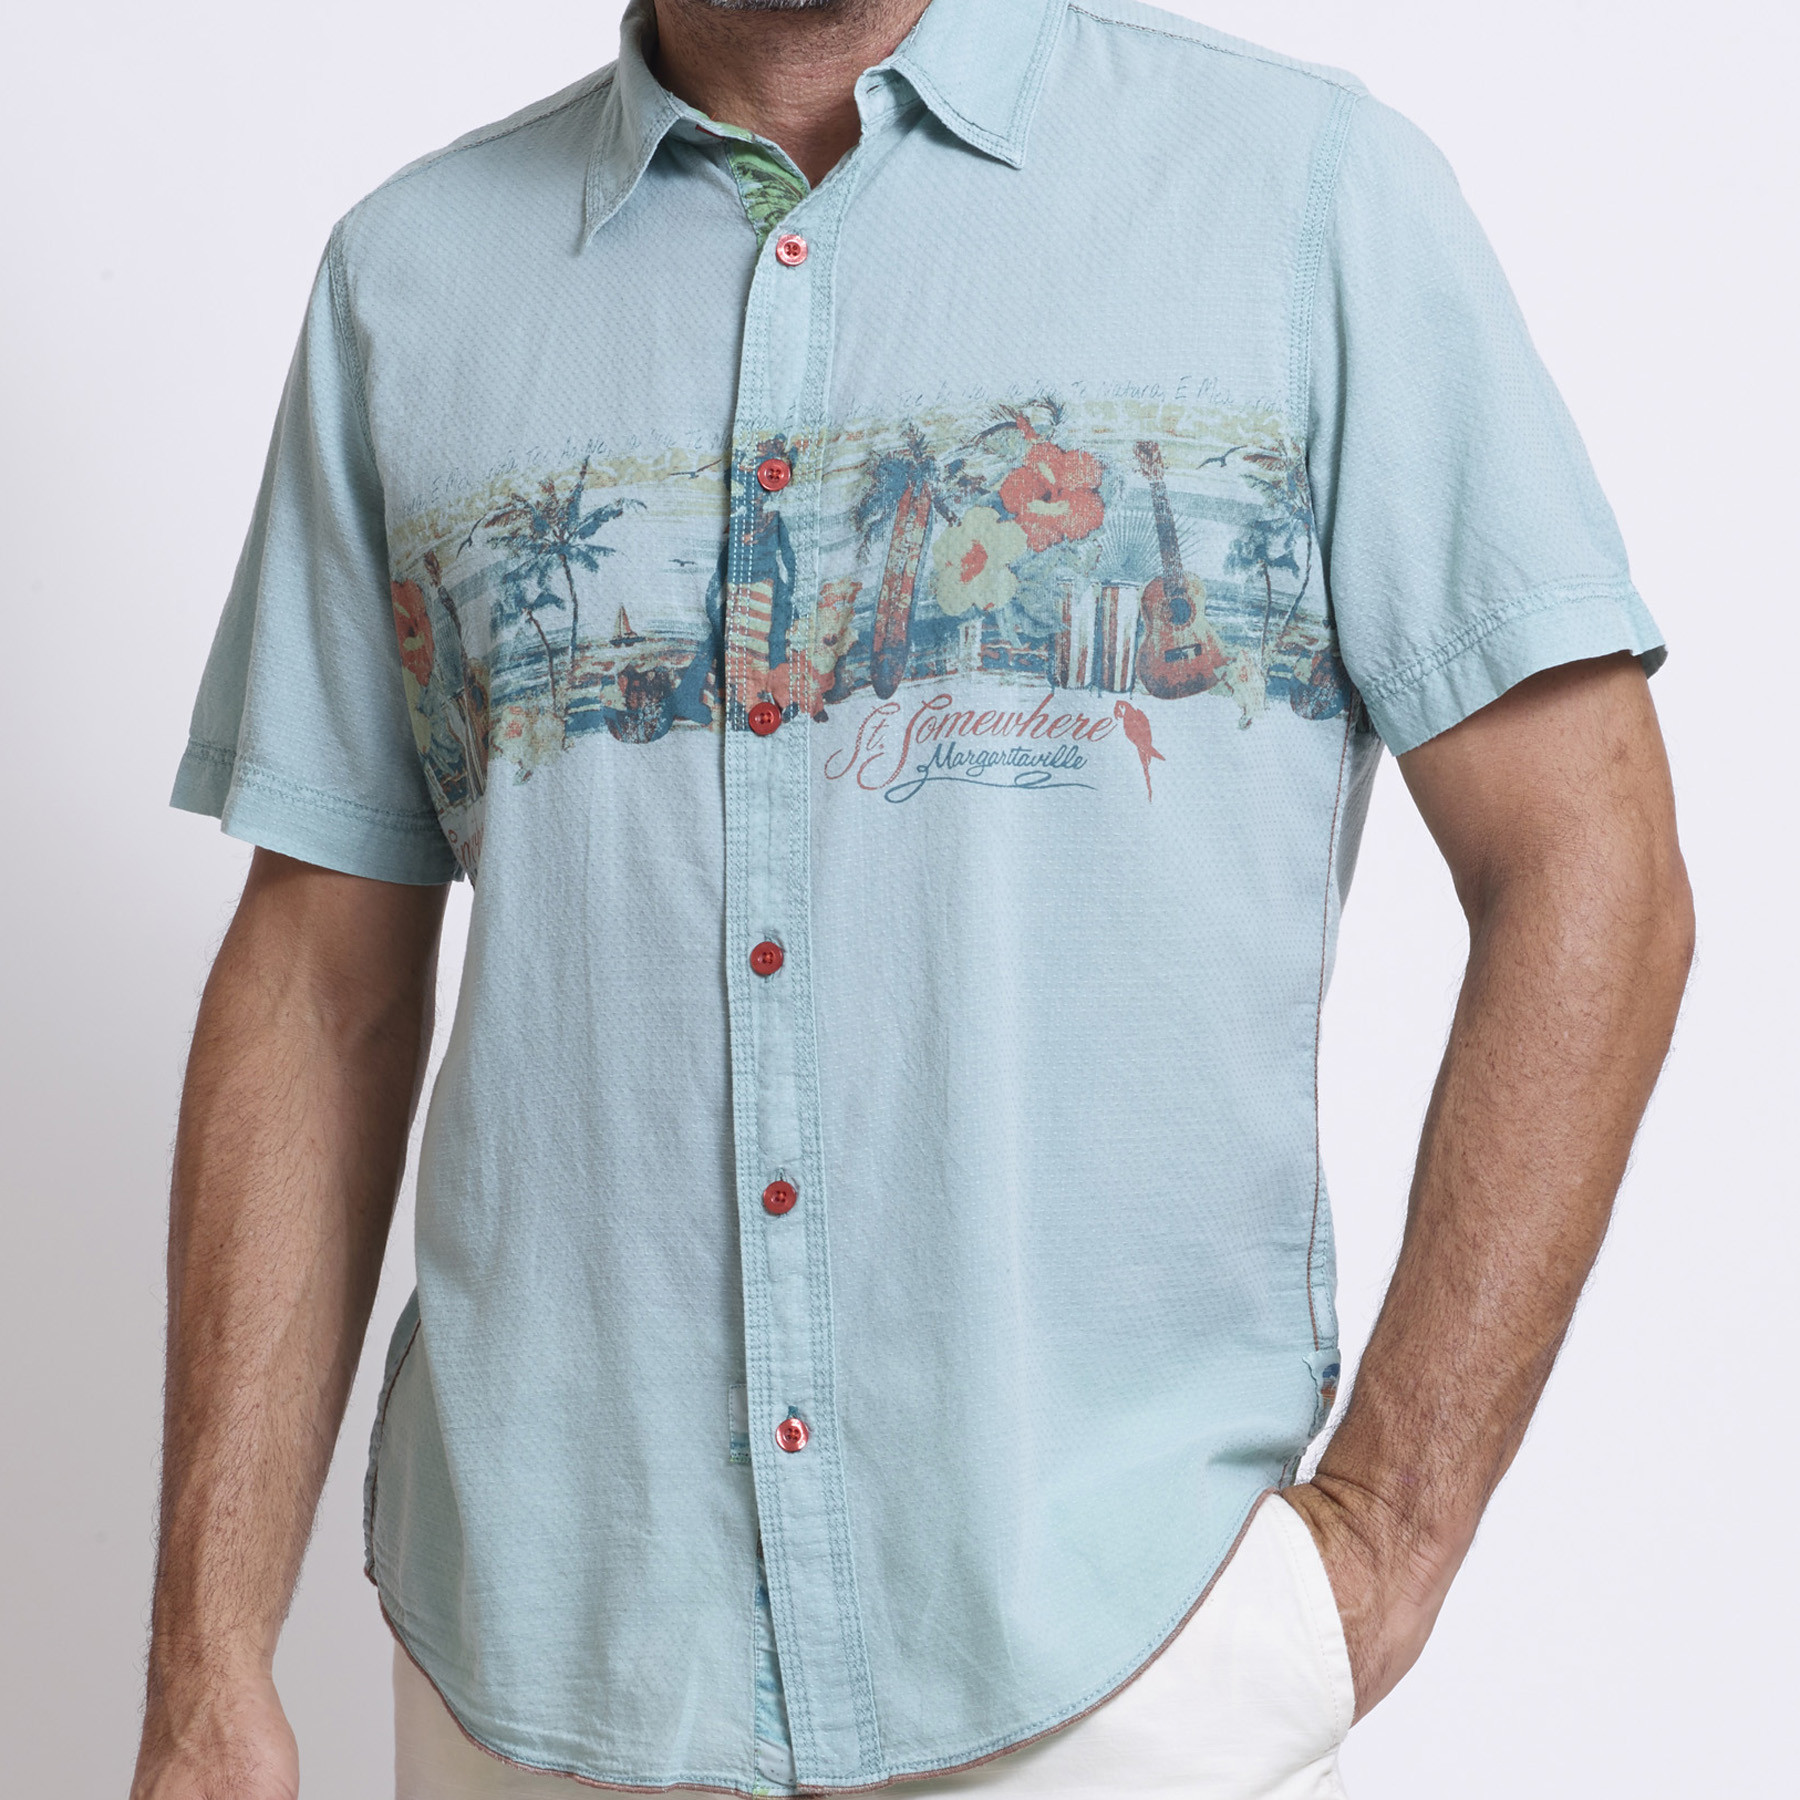 S/S JAMAICAN VACATION SHIRT